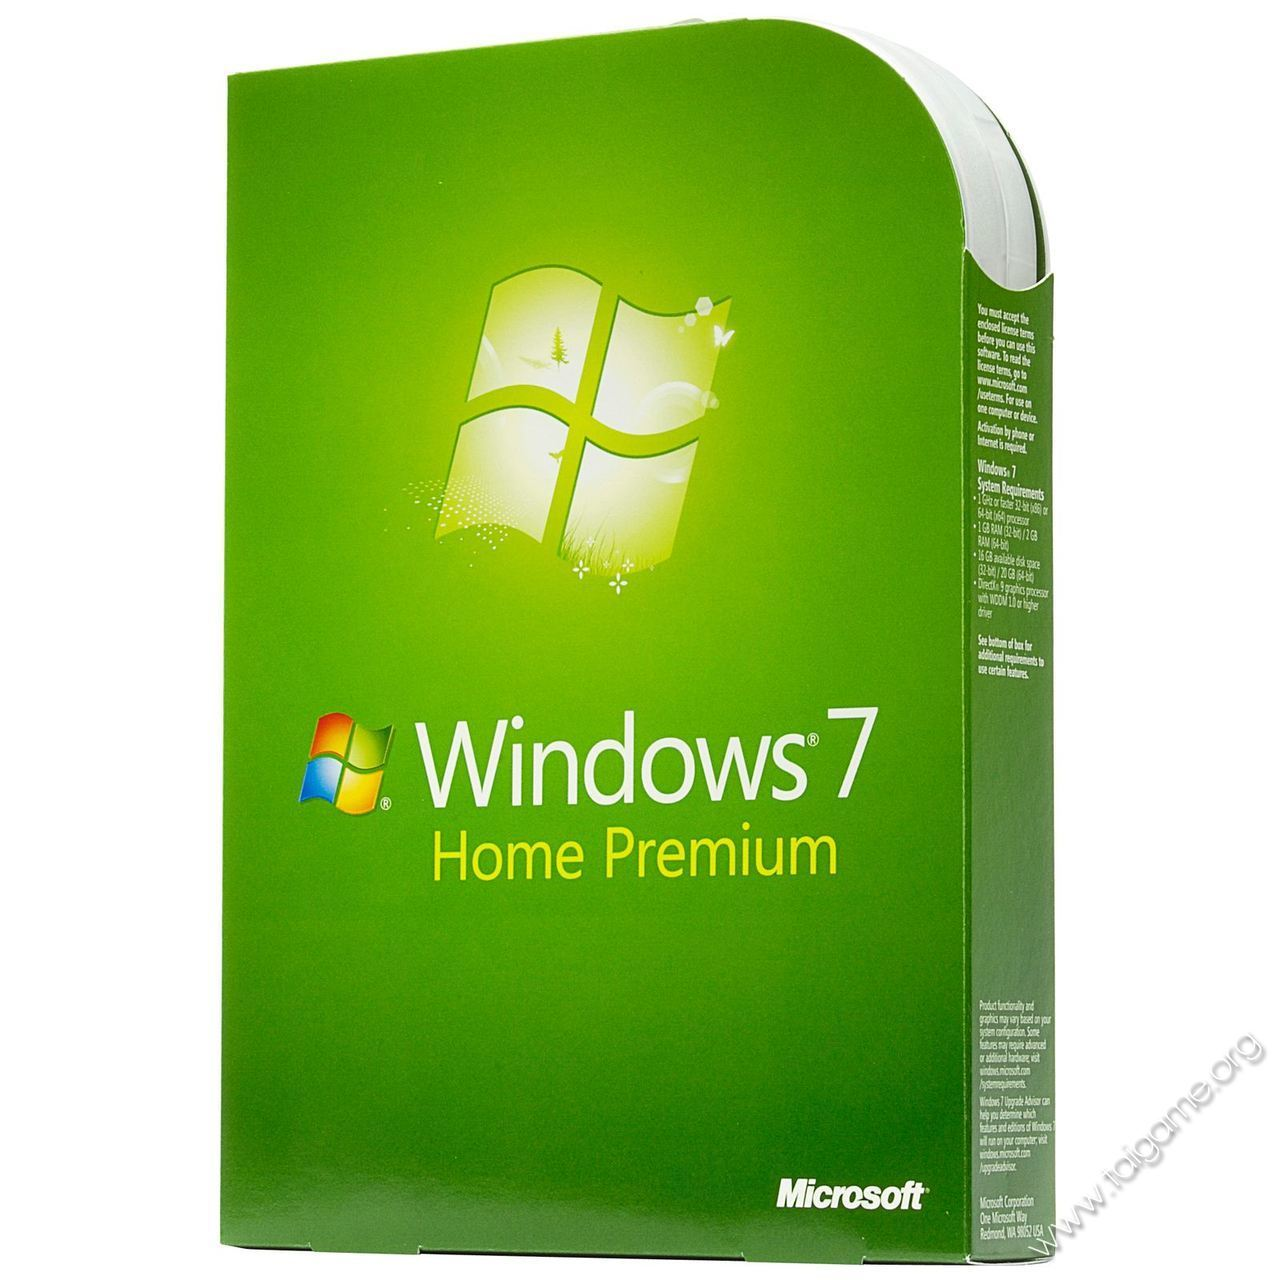 windows sp1 download: